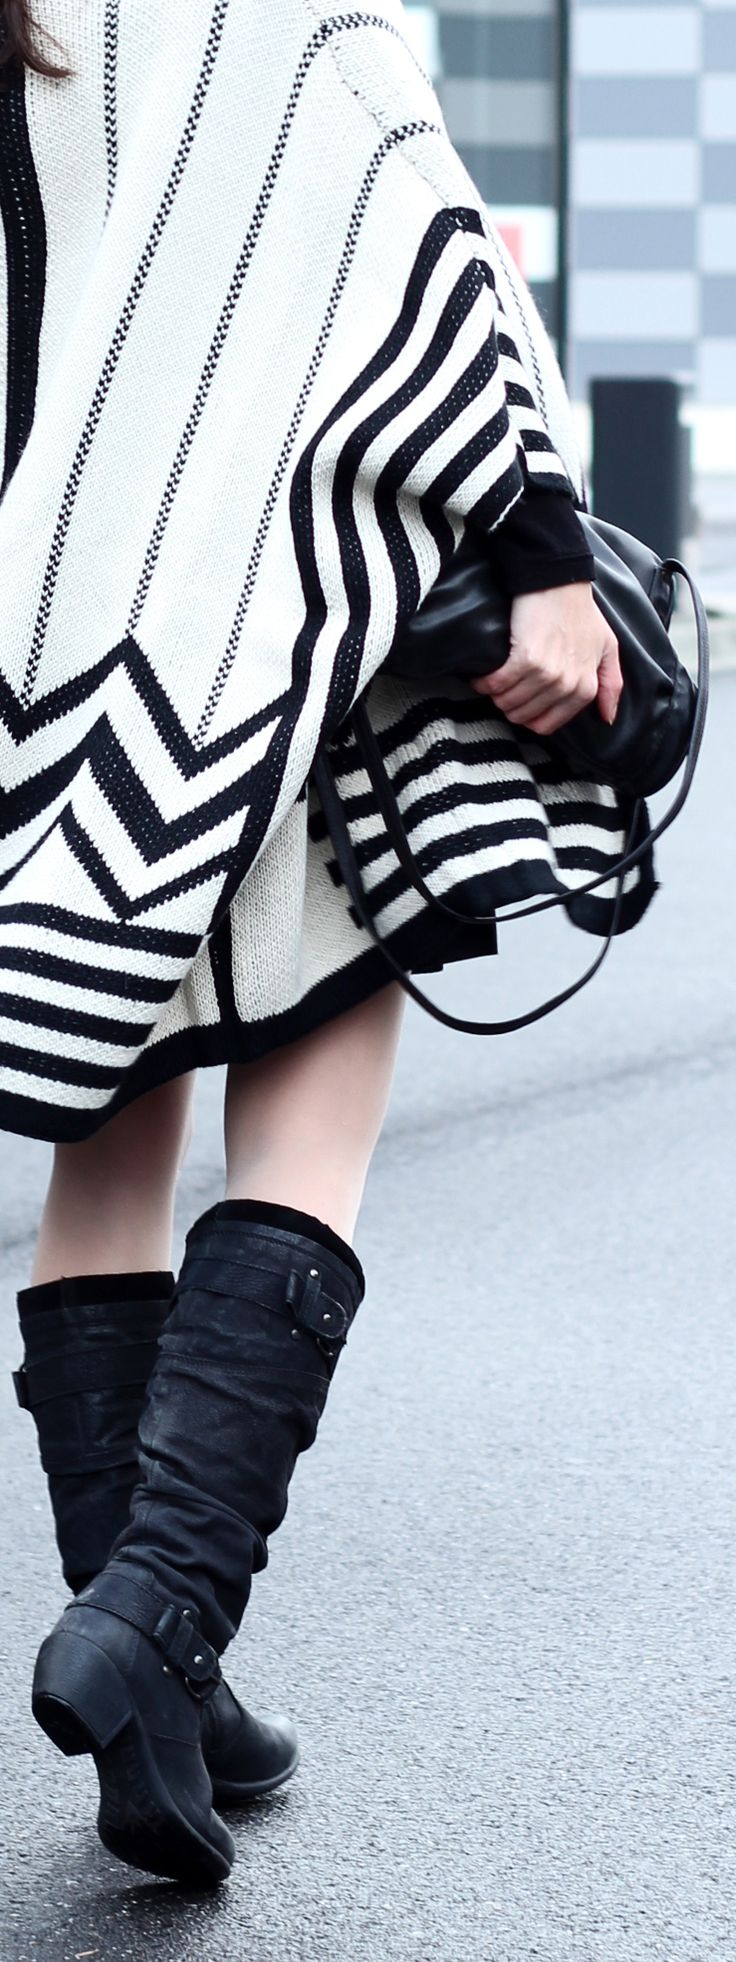 Herbst/Winter-Outfit mit Cape / Poncho mit Chevron-Muster, Leder-Kleid, Stiefel | Filizity.com | Fashion-Blog aus dem Rheinland #poncho #cape #herbst #winter #outfit